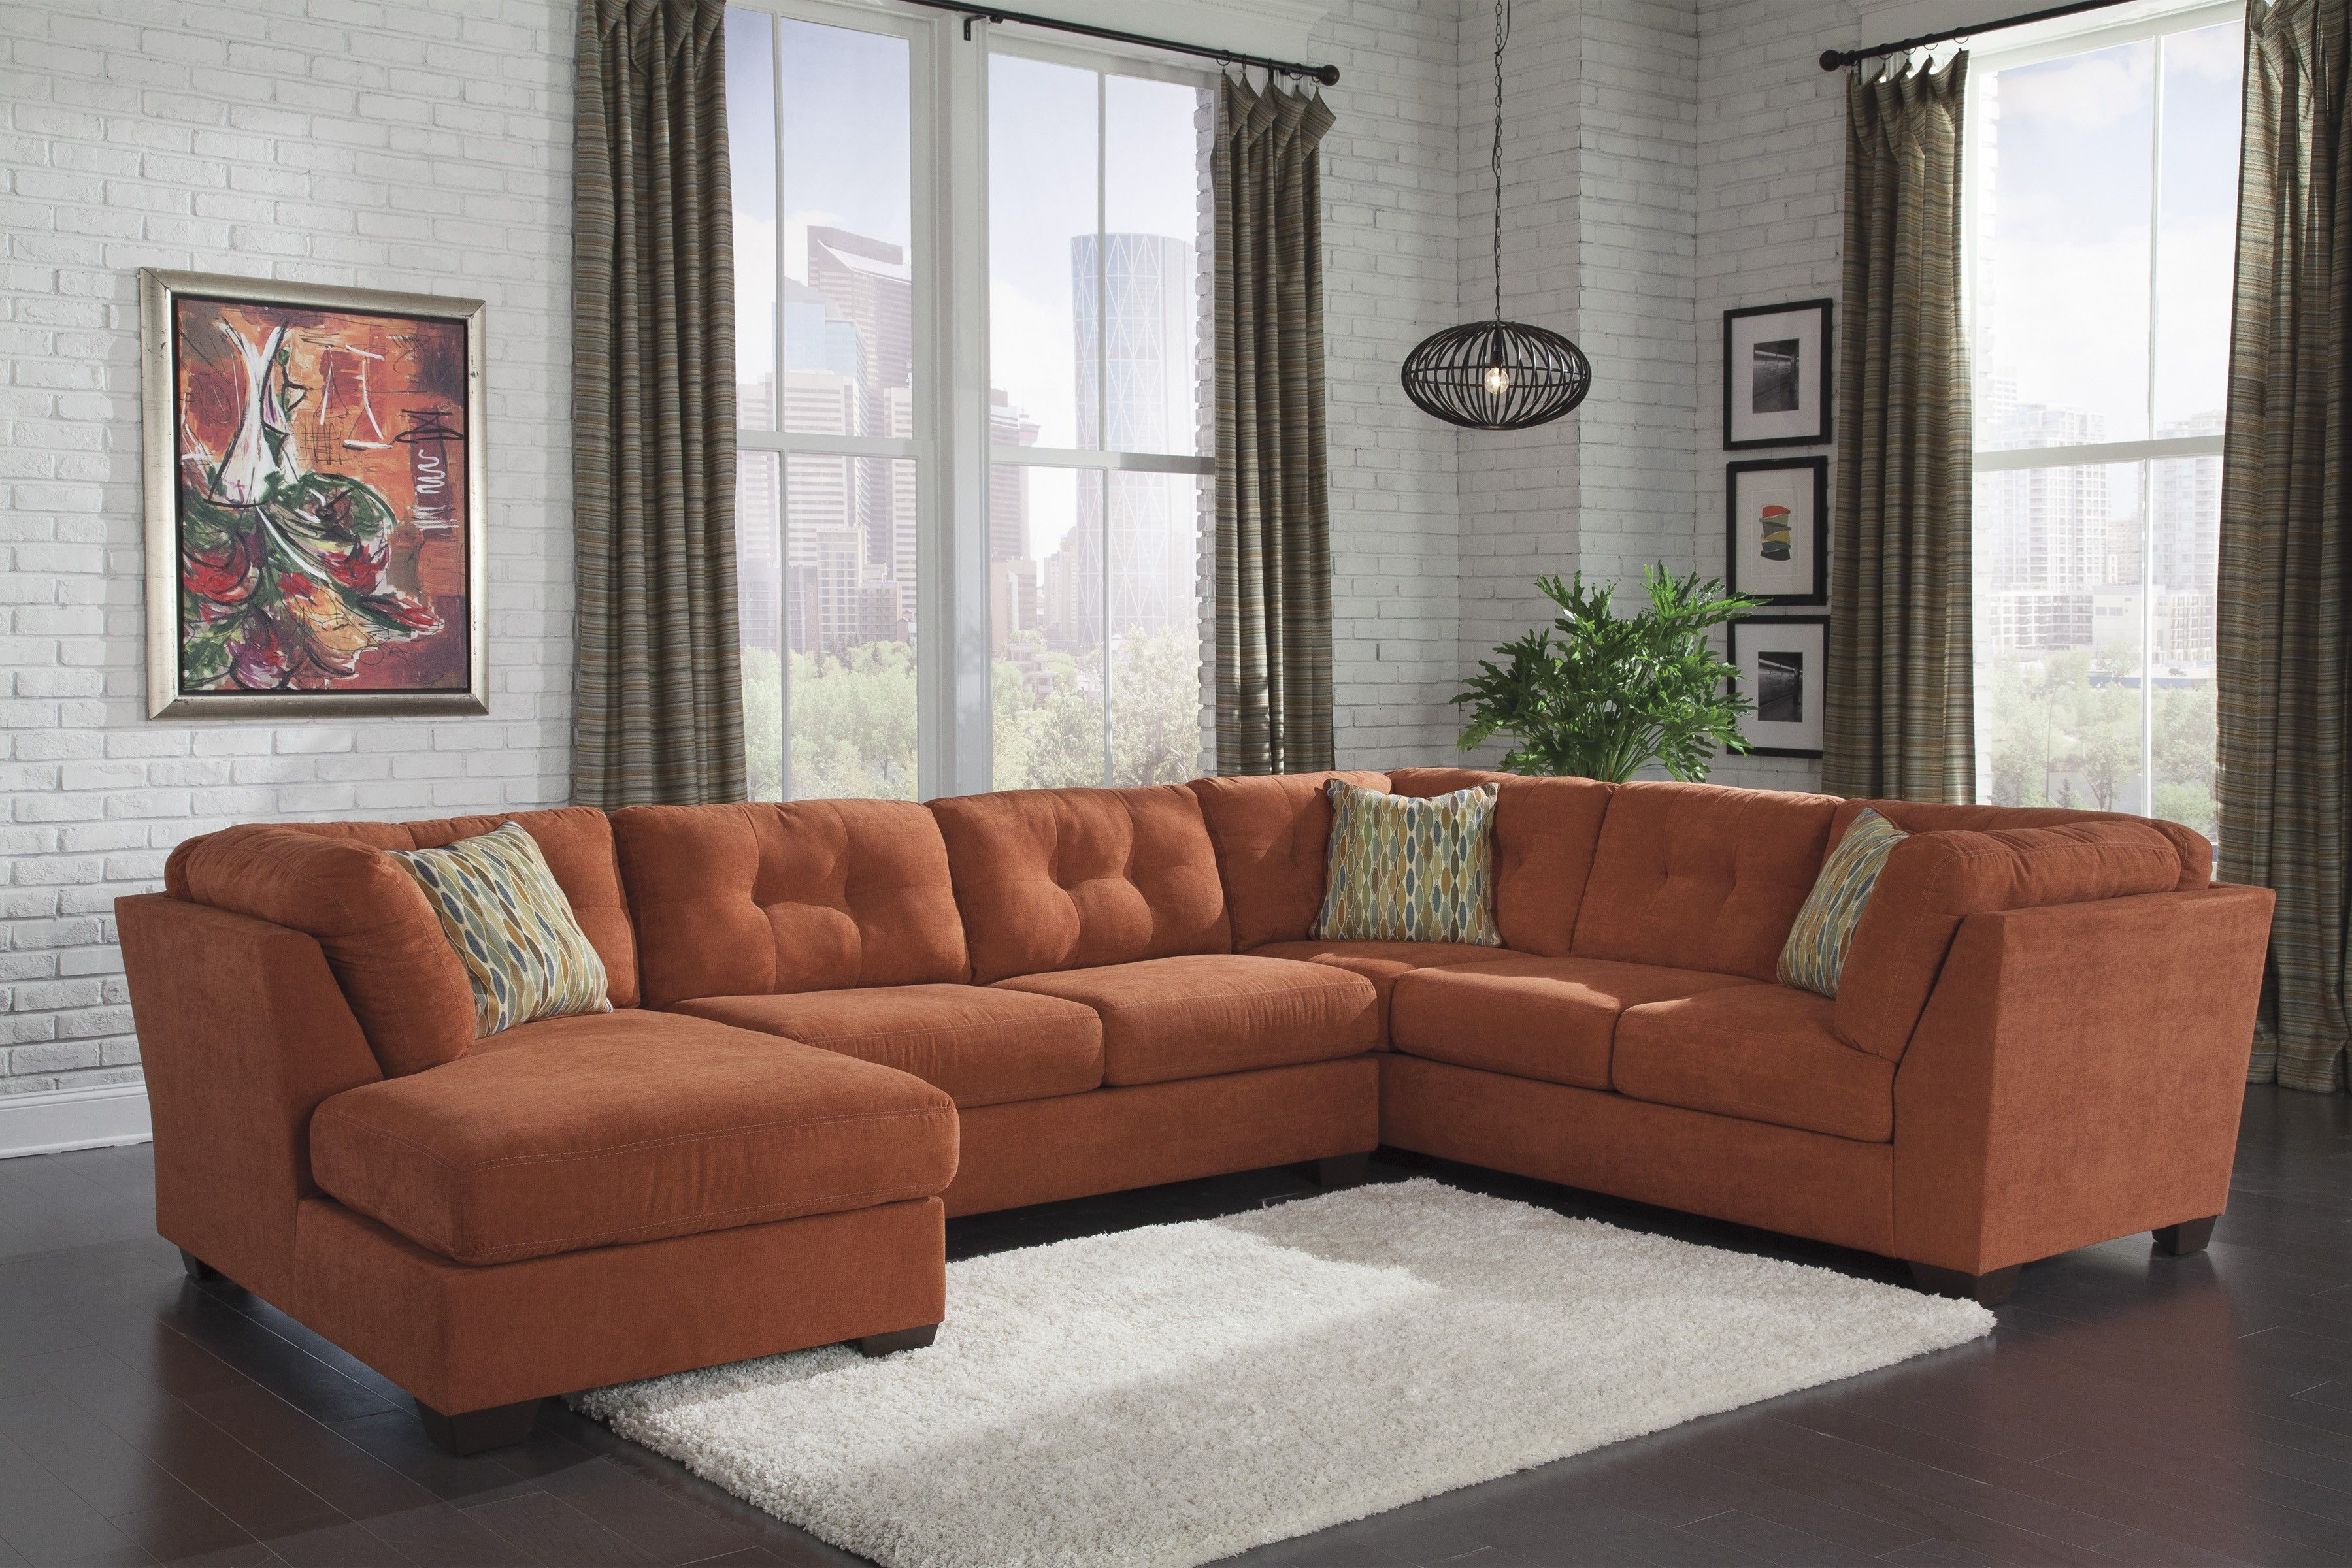 crns attractive with gorgeous als b iec sofa chaise loveseat chase energycrops left products